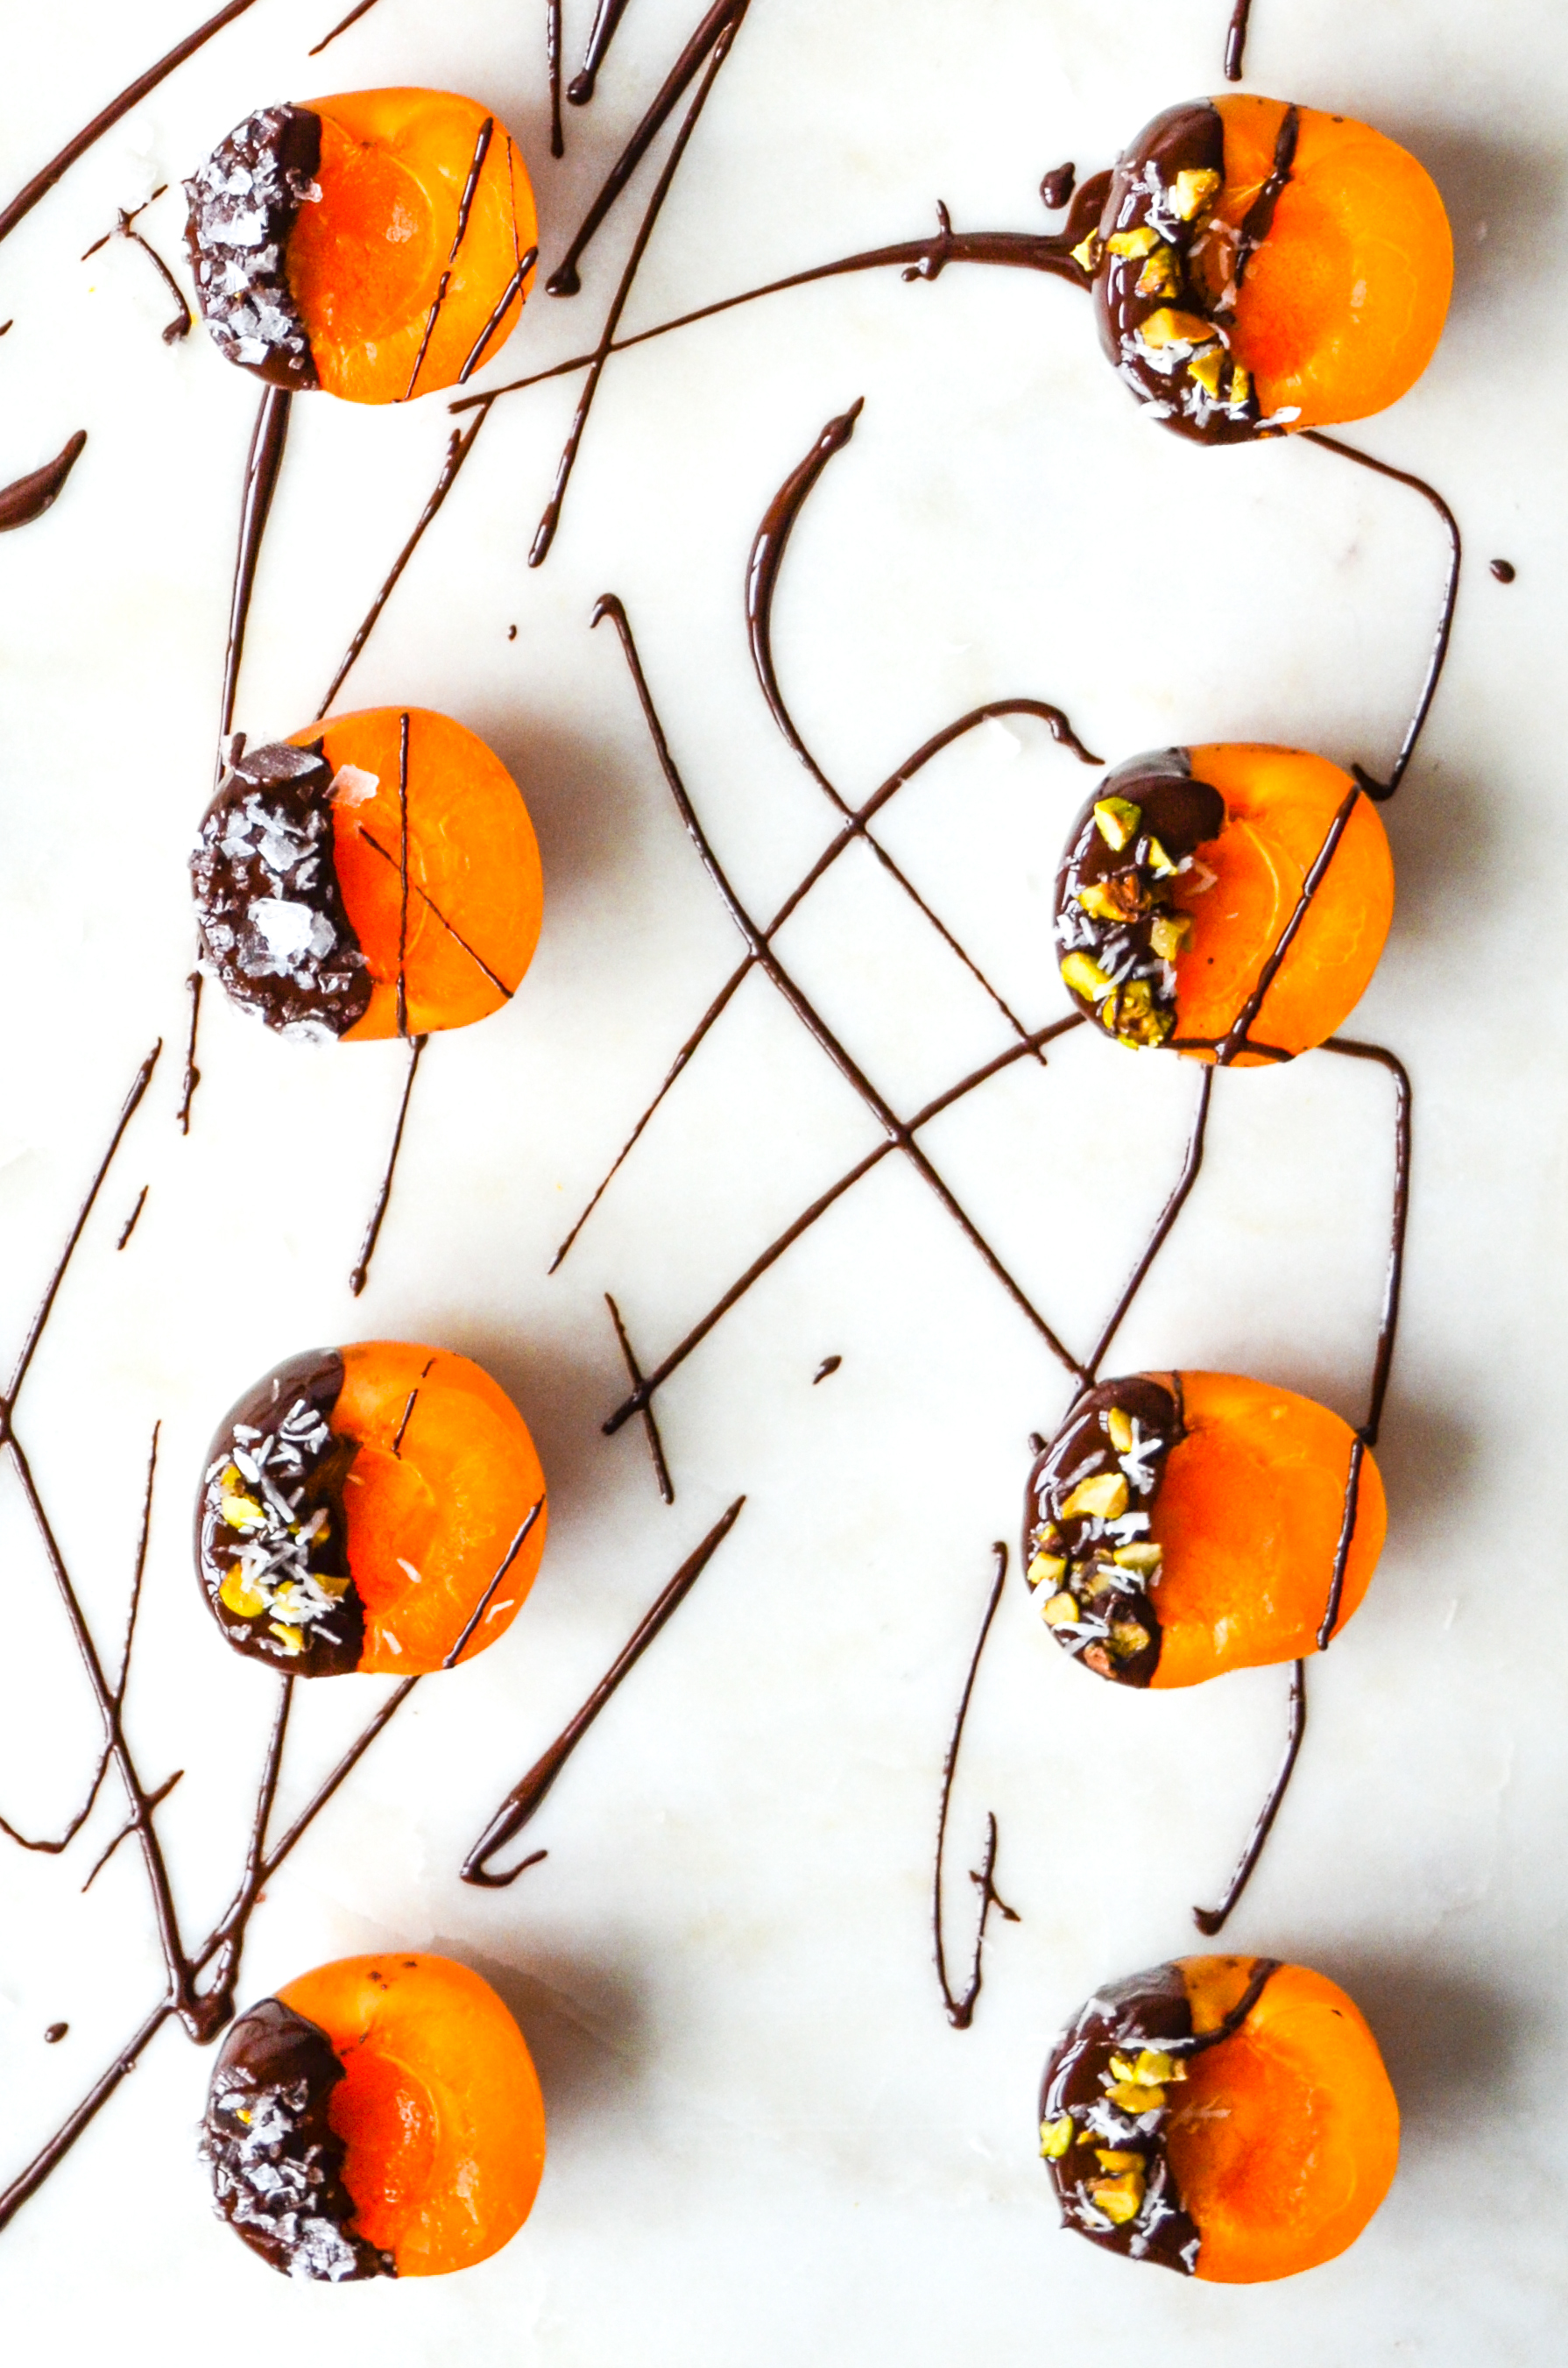 paleo chocolate covered apricots :: #OITNB ShiraRD #paleo #refinedsugarfree #SnacksbyShira #orangeisthenewblack